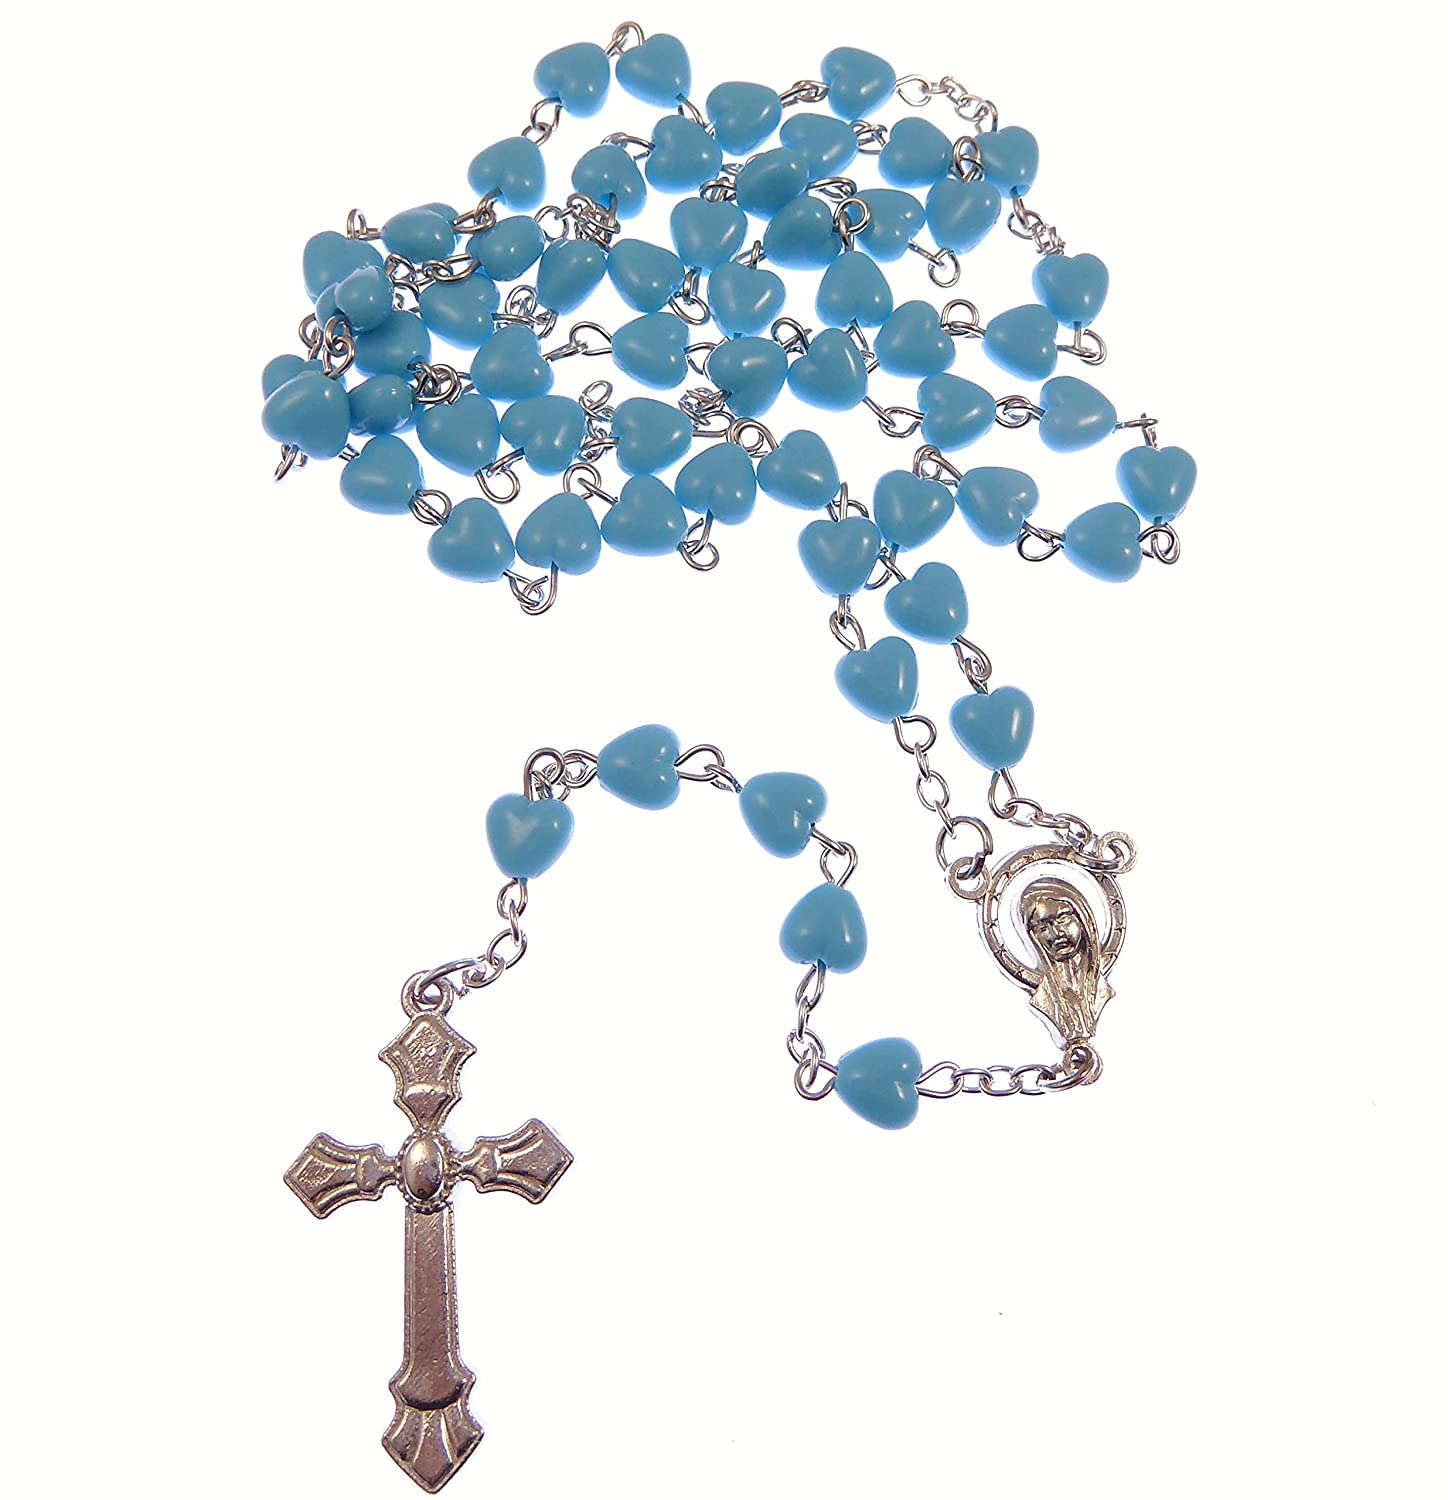 Catholic blue glass heart rosary beads on silver chain 5 decade 51cm length R. Heaven